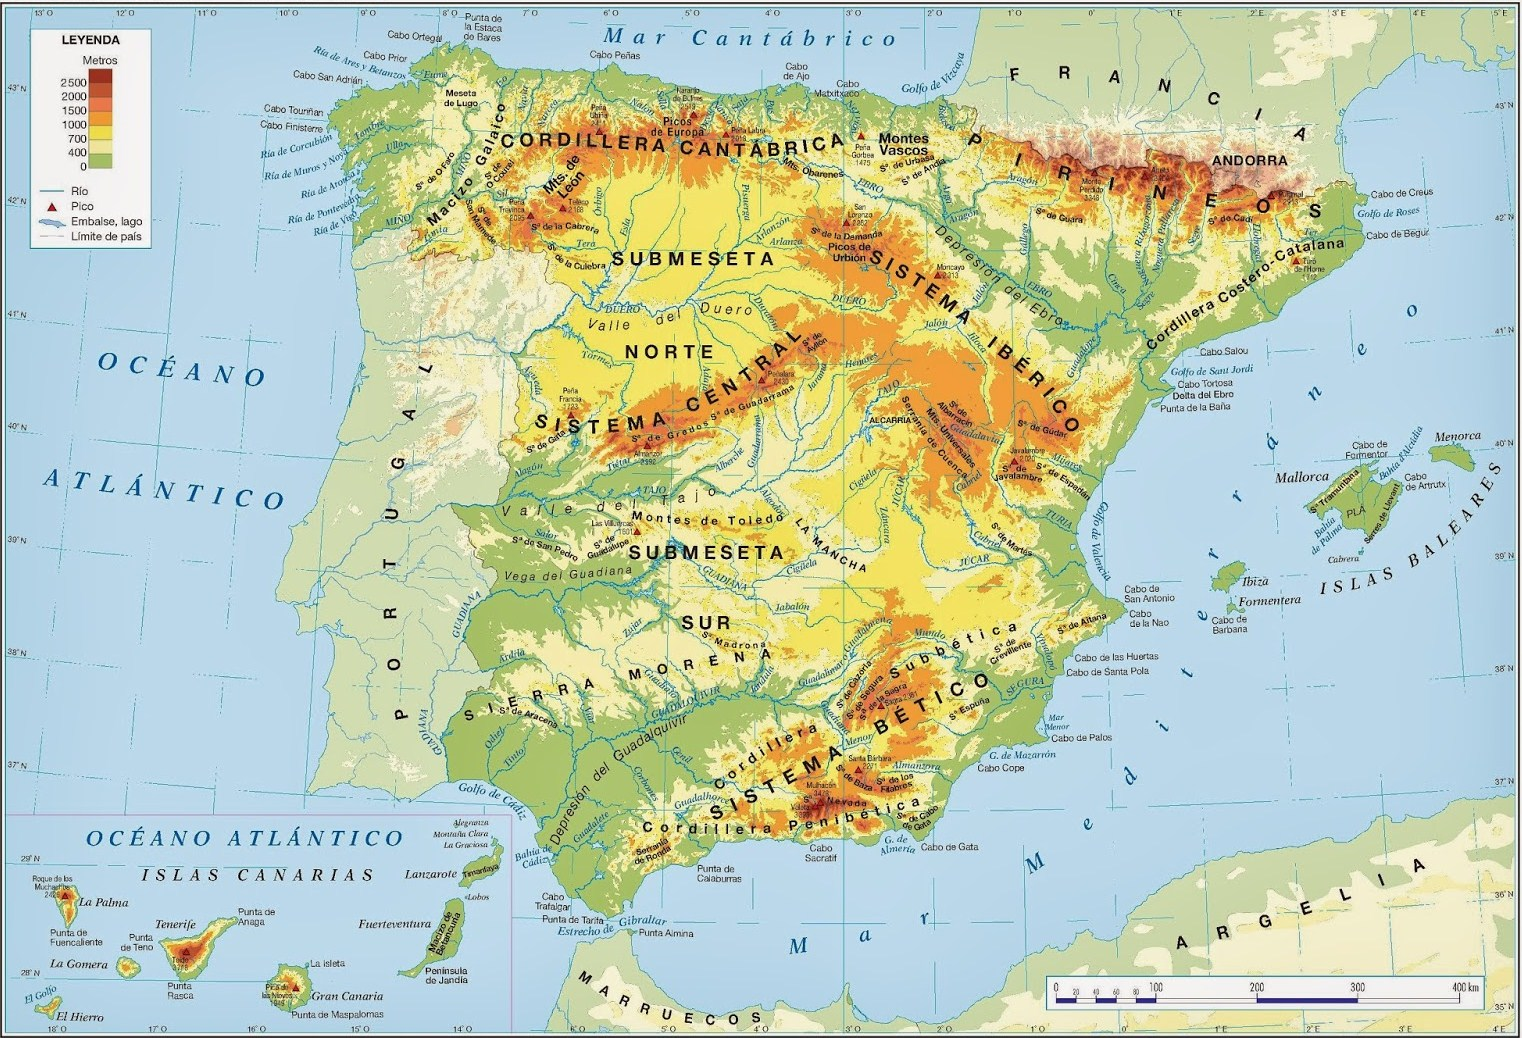 Mapa-Fcadsico-De-Espacbacb-Subway-Map-With-Cities-Map-Of-Spain-With-Rivers-And-Mountains.jpg